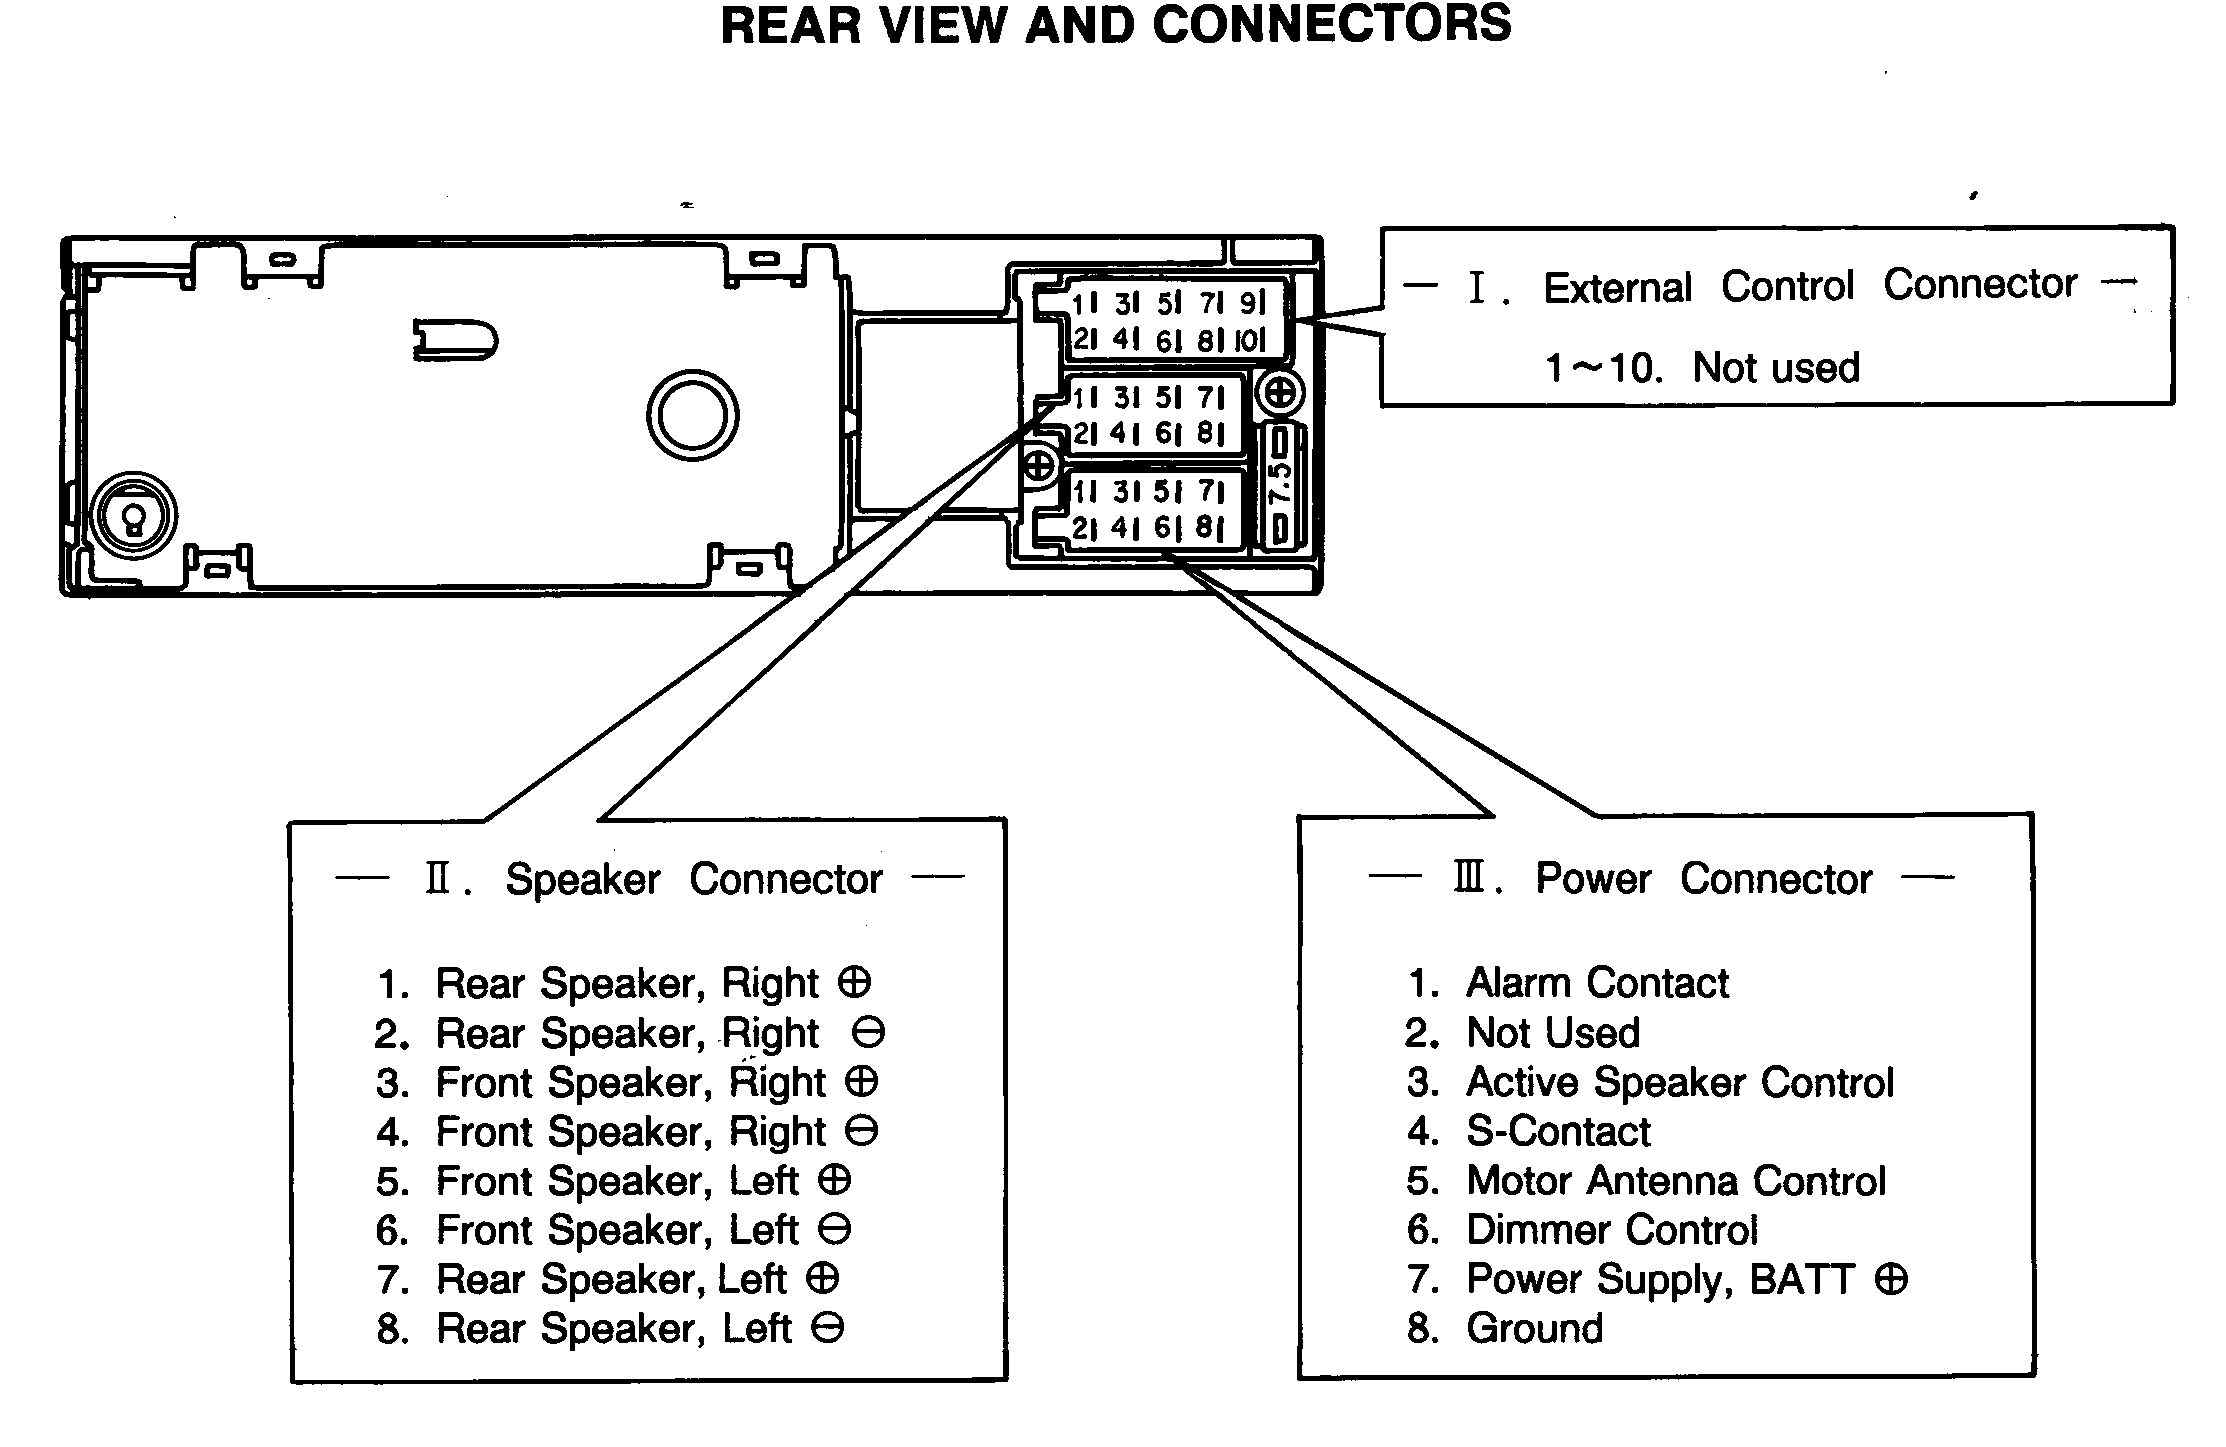 Stereo Wiring Help Diagram Online Dodge Harness Connectors Car Audio Wire Codes Volkswagen Factory Repair Caravan